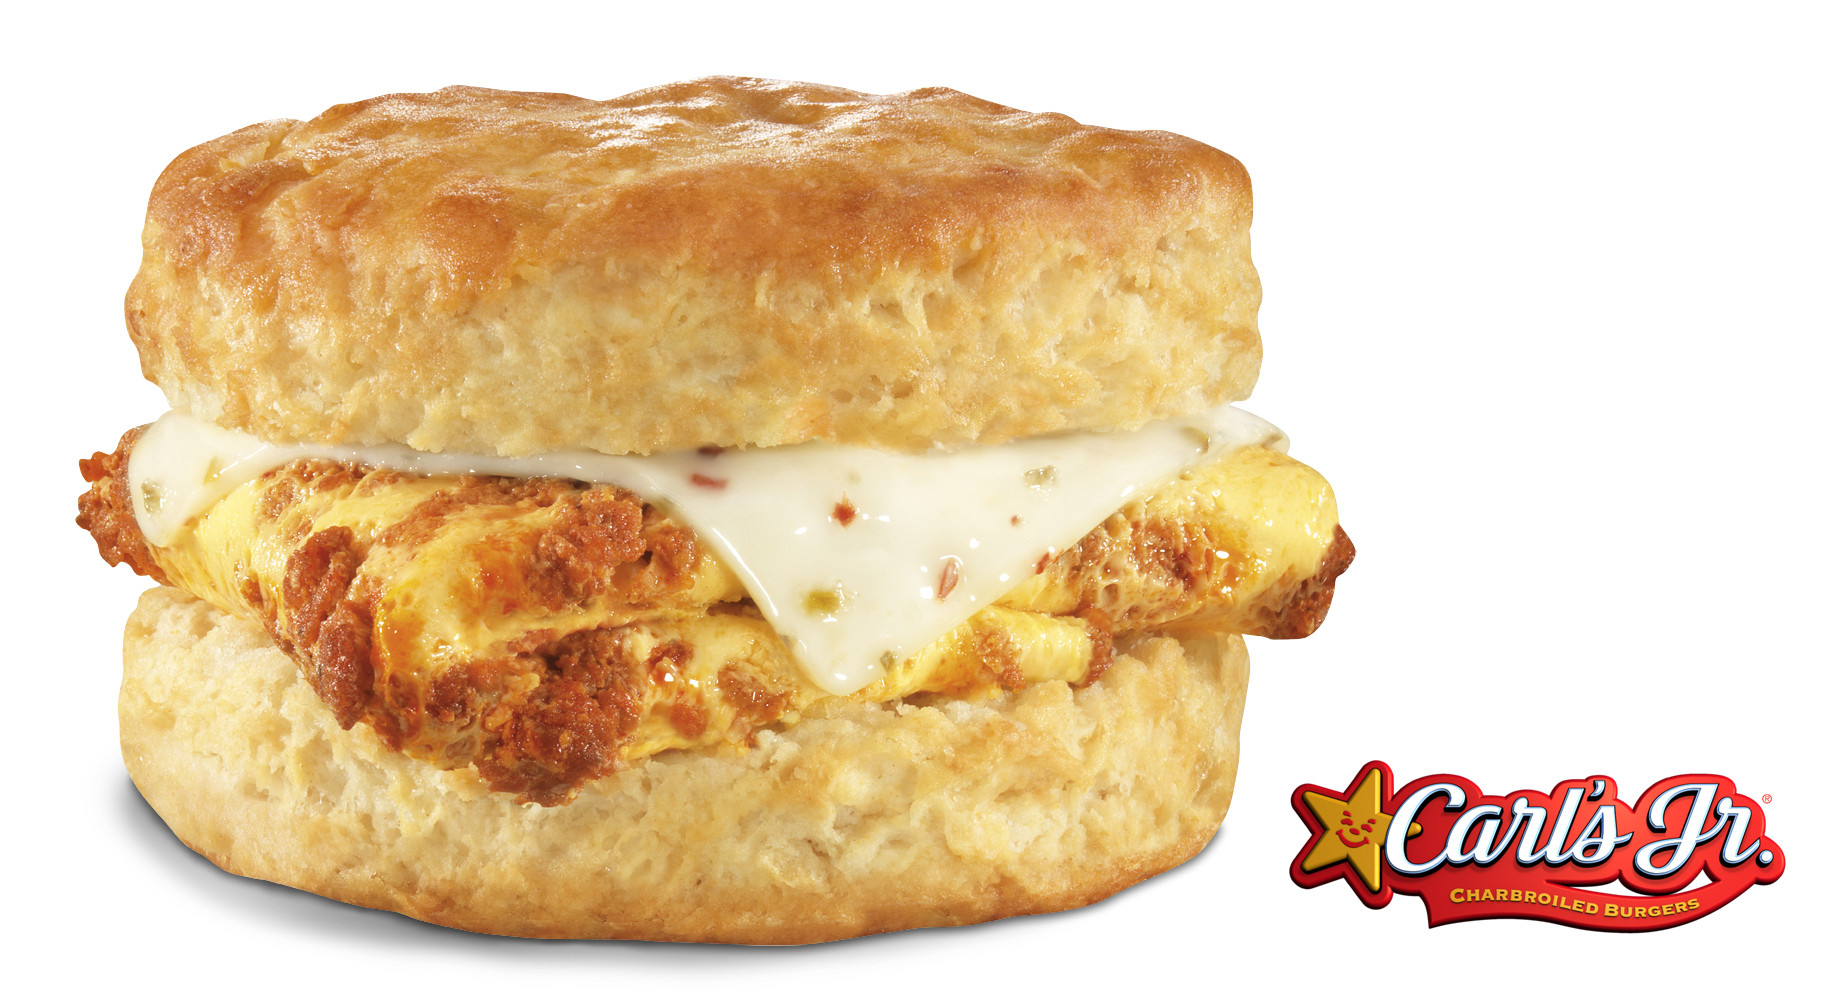 Carls Jr Dessert  CARL'S JR HEATS UP BREAKFAST COOLS DOWN DESSERT WITH NEW